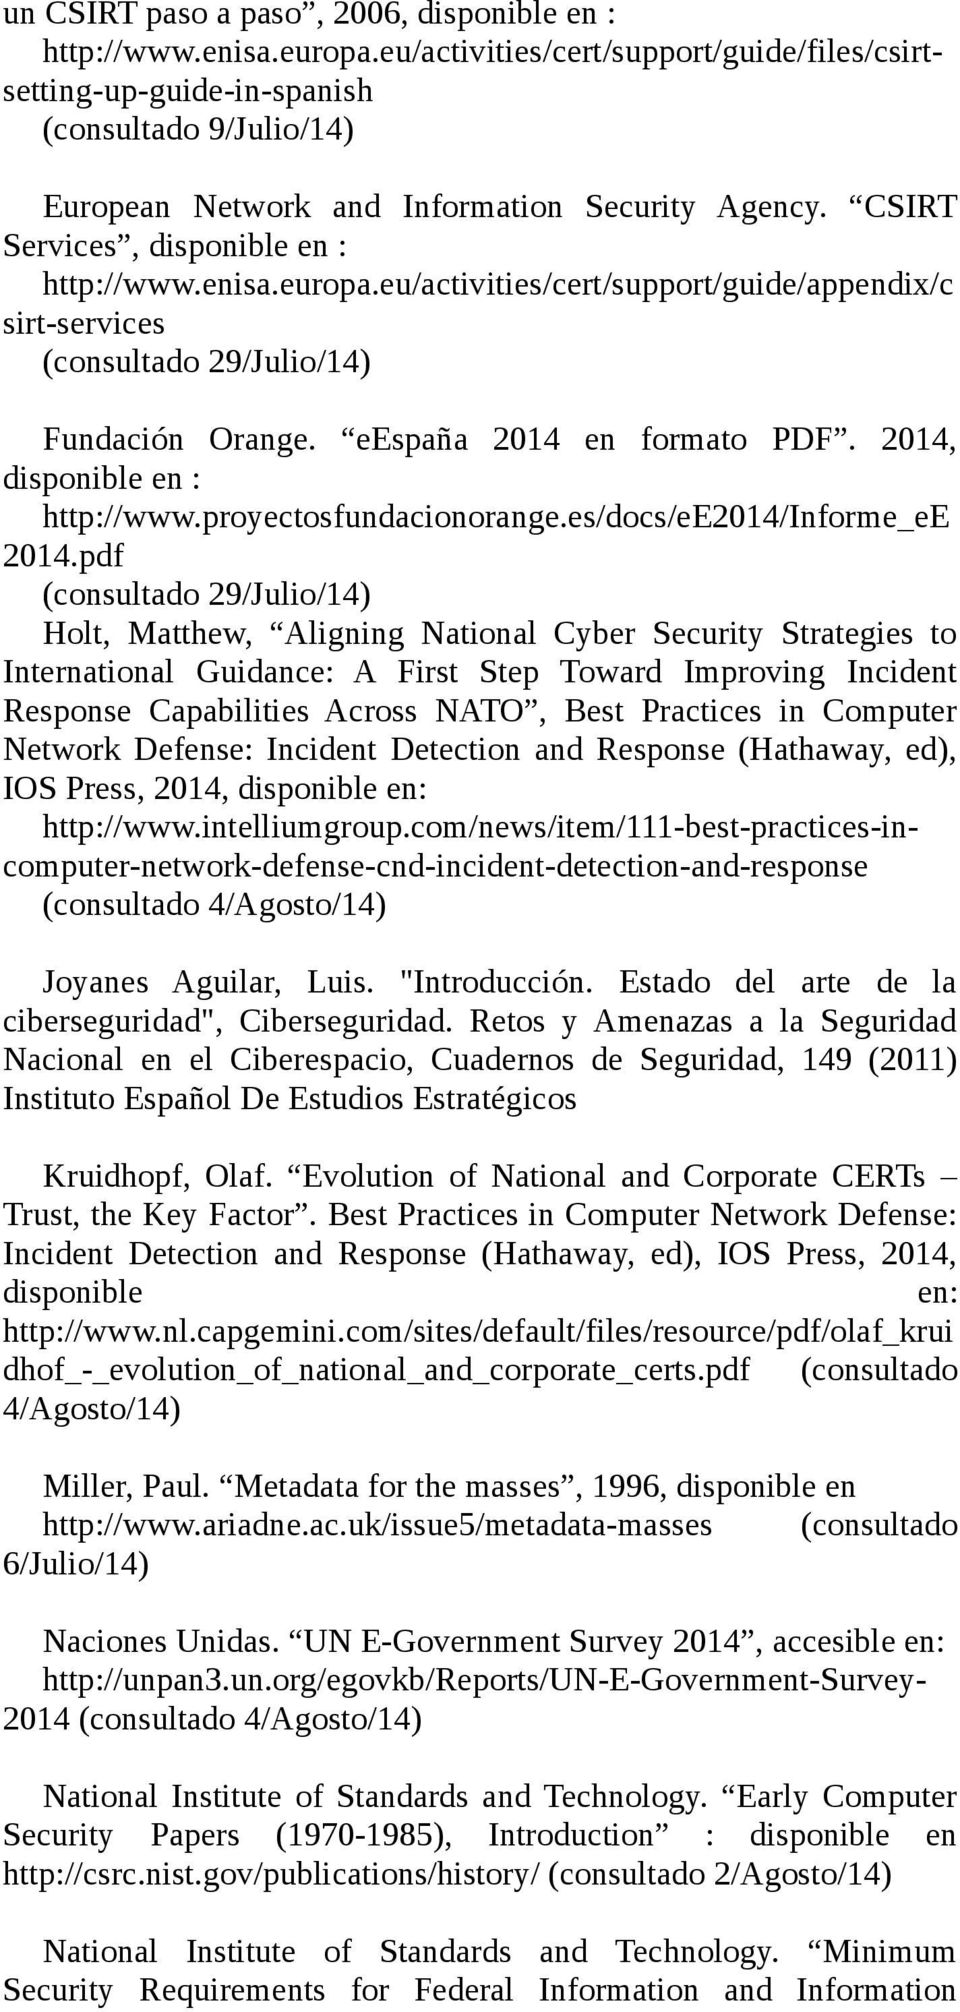 europa.eu/activities/cert/support/guide/appendix/c sirt-services (consultado 29/Julio/14) Fundación Orange. eespaña 2014 en formato PDF. 2014, disponible en : http://www.proyectosfundacionorange.